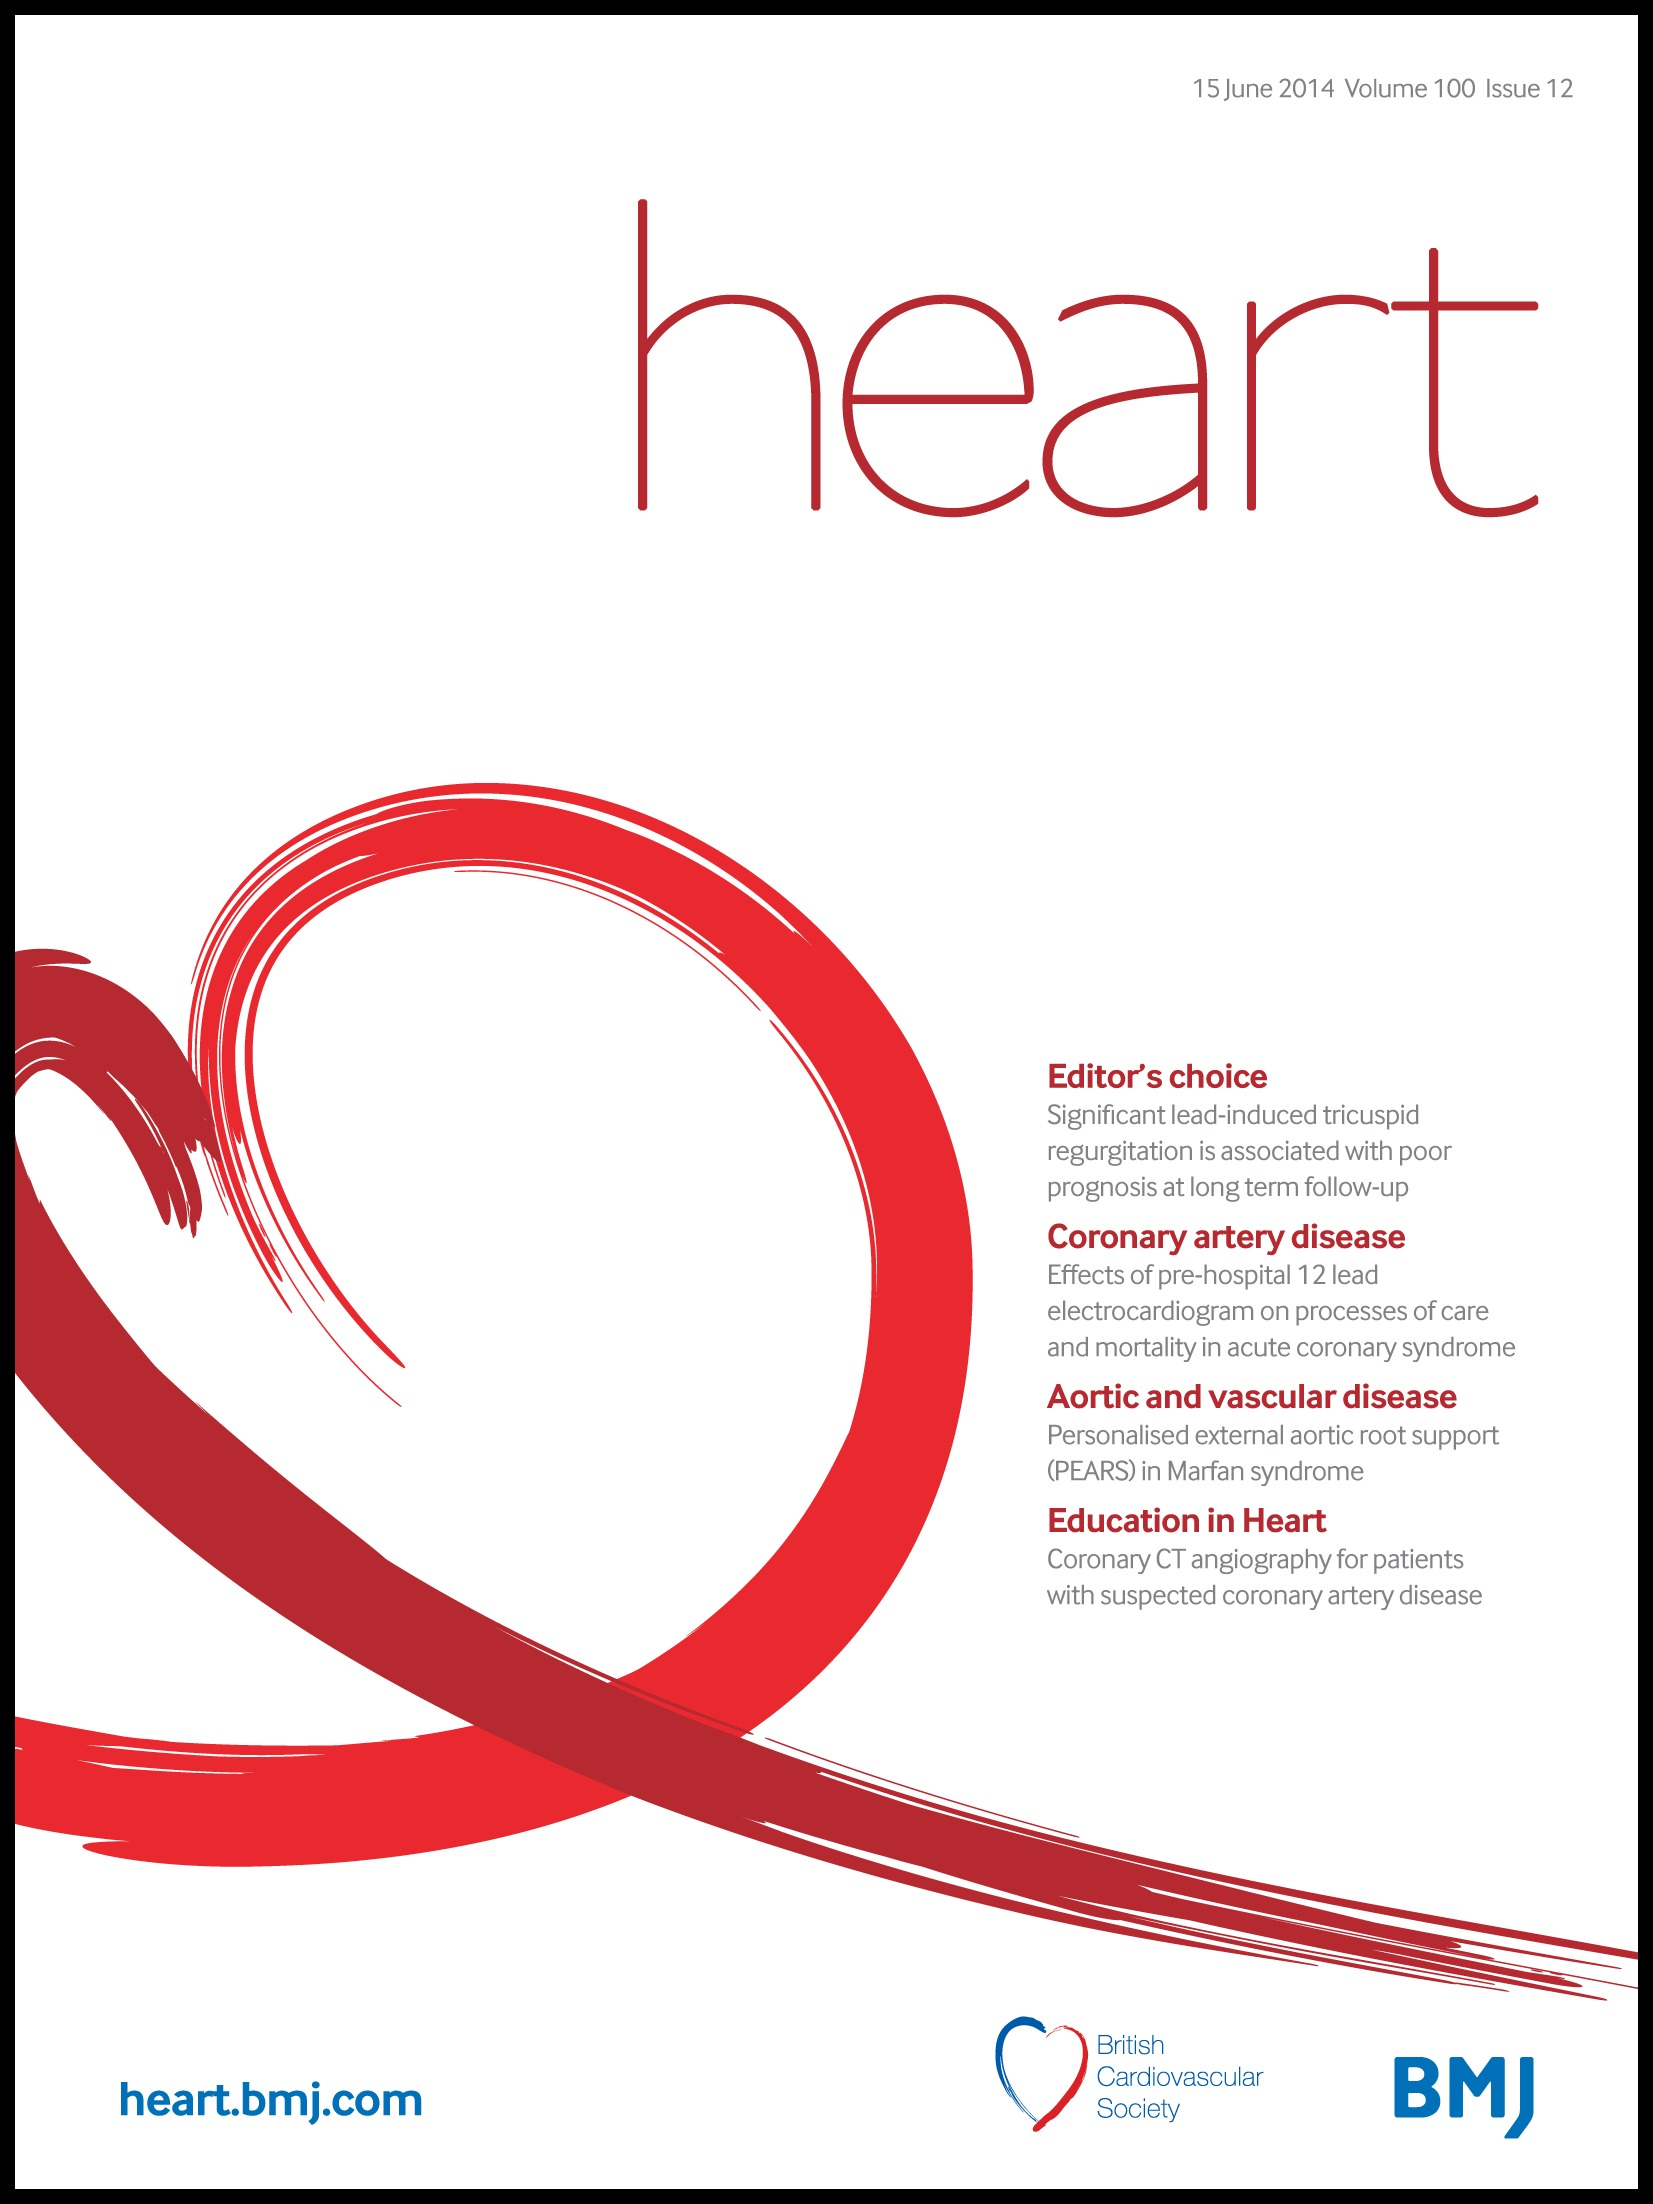 hight resolution of effects of prehospital 12 lead ecg on processes of care and mortality in acute coronary syndrome a linked cohort study from the myocardial ischaemia